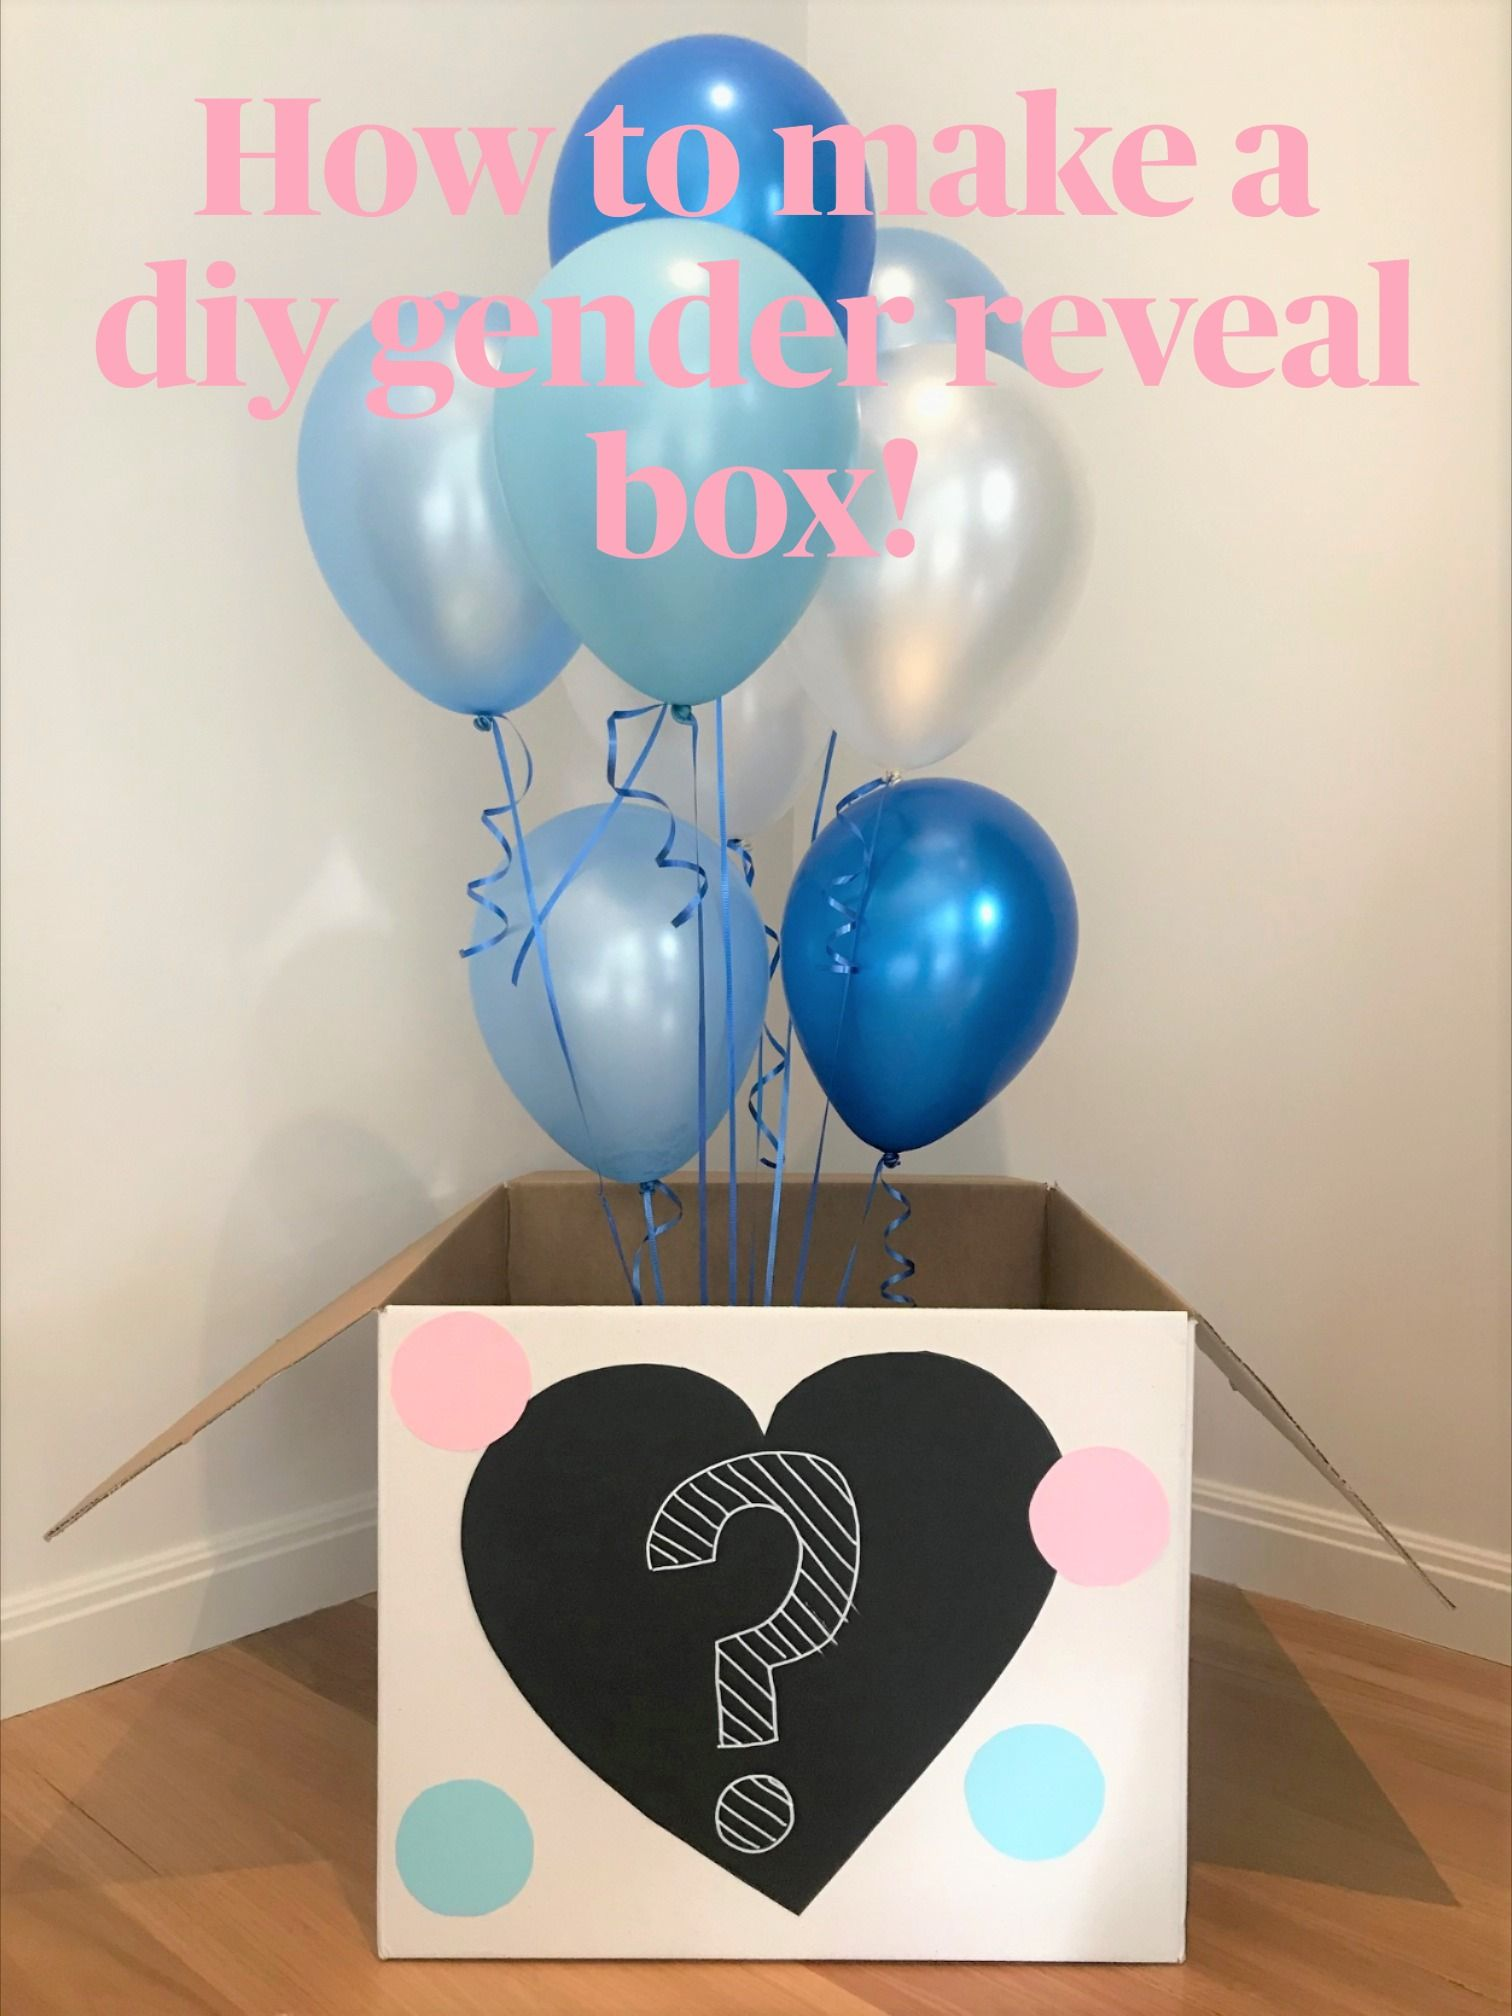 Diy Gender Reveal Box With Balloons Darling Celebrations Gender Reveal Box Gender Reveal Balloons Gender Reveal Decorations